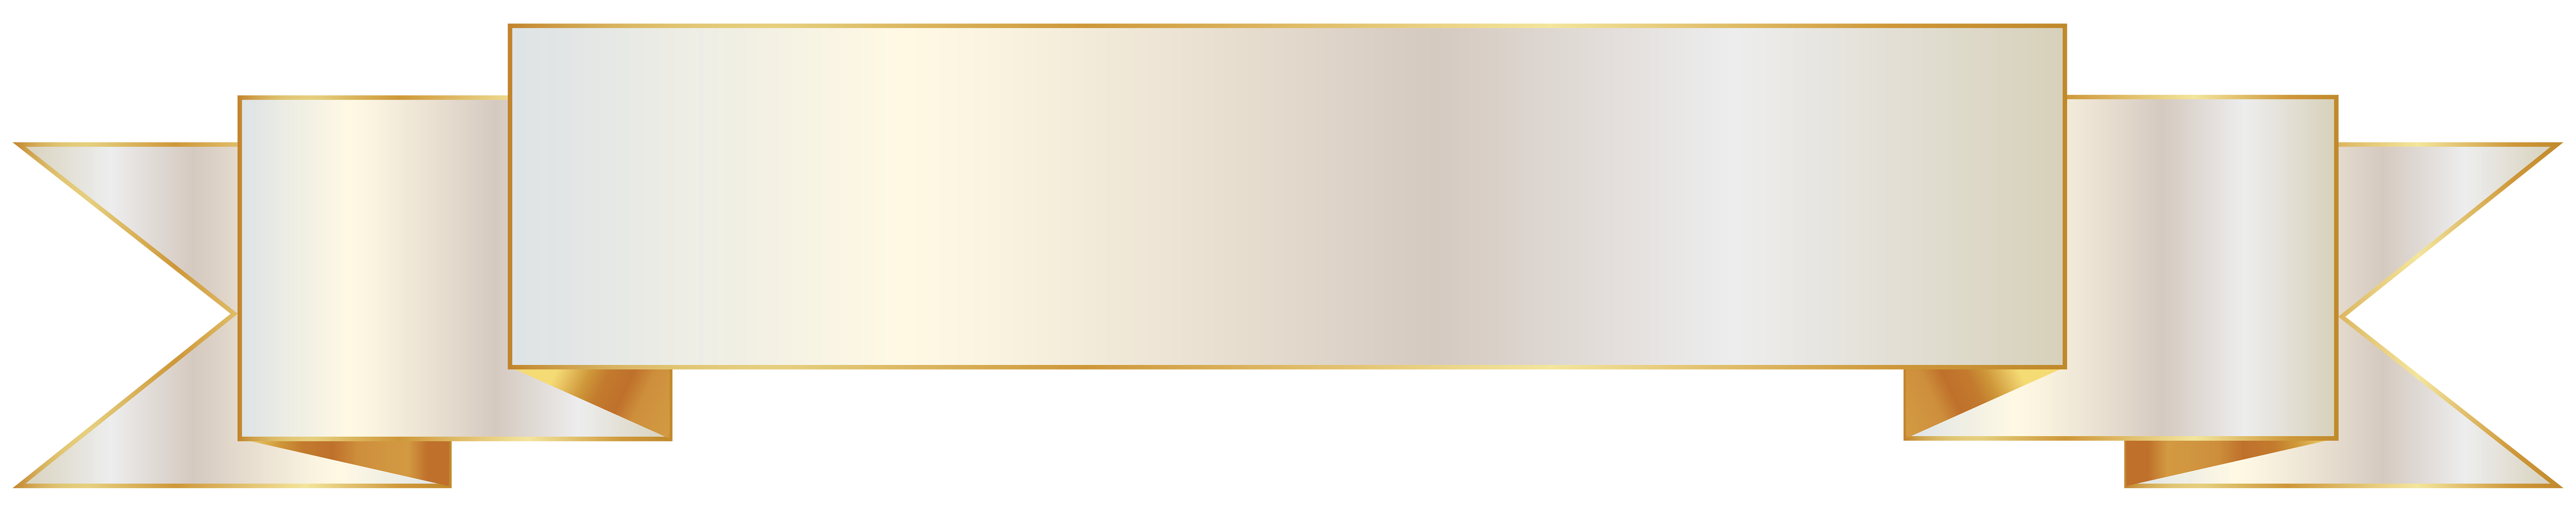 Banner png white. And gold clipart image